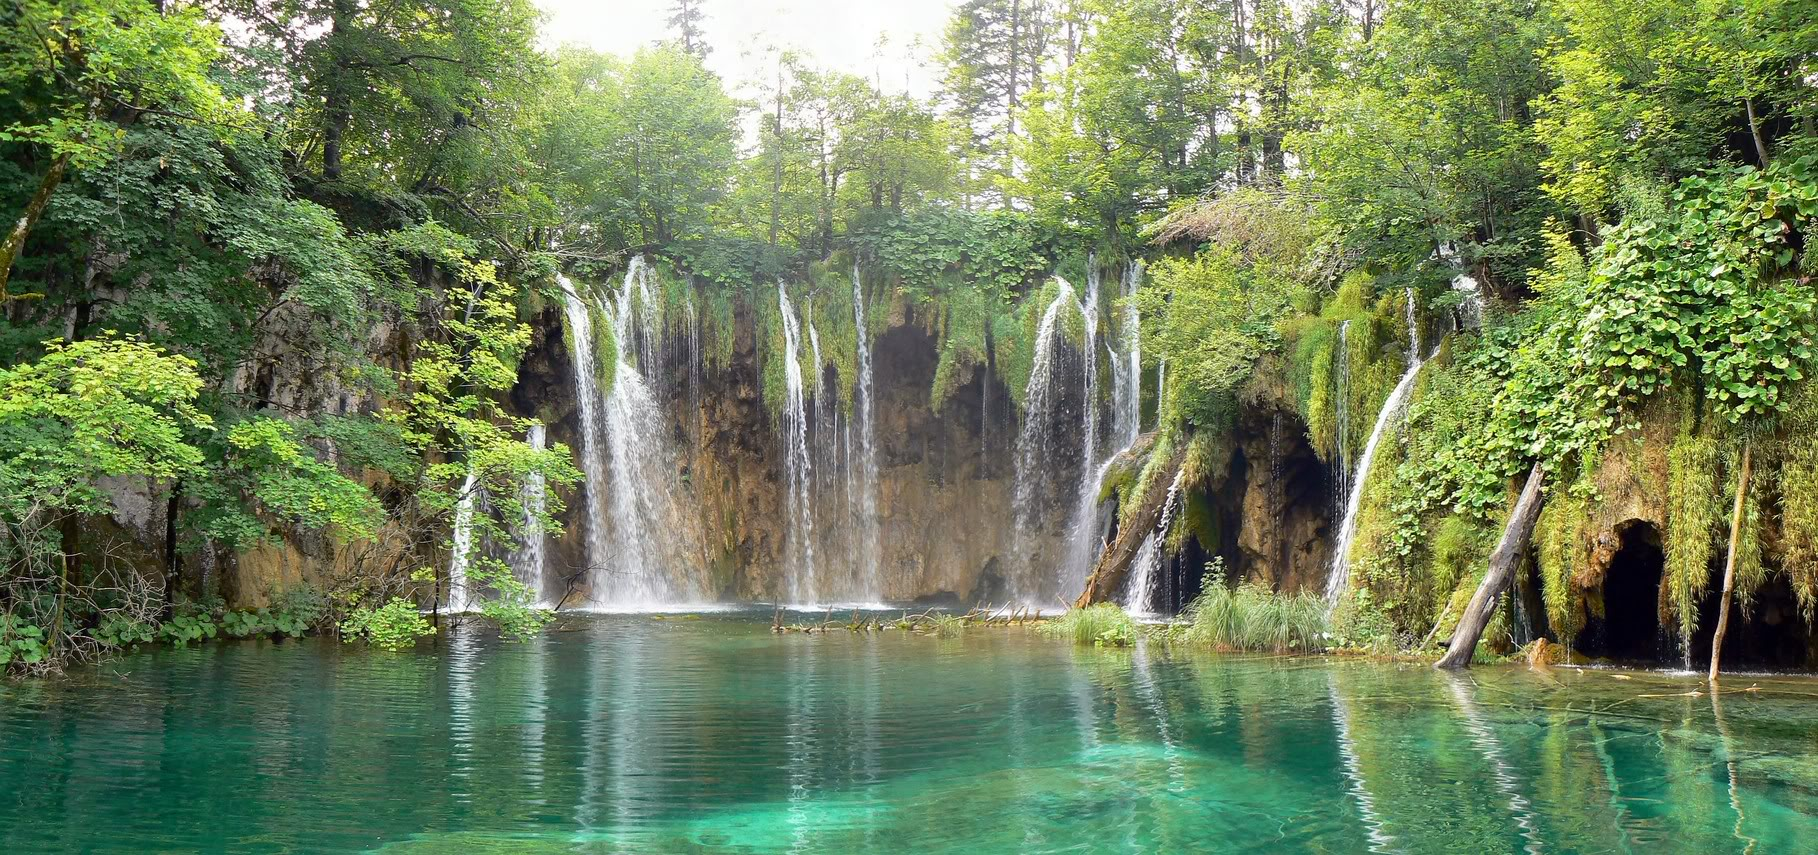 how to go to plitvice lakes national park